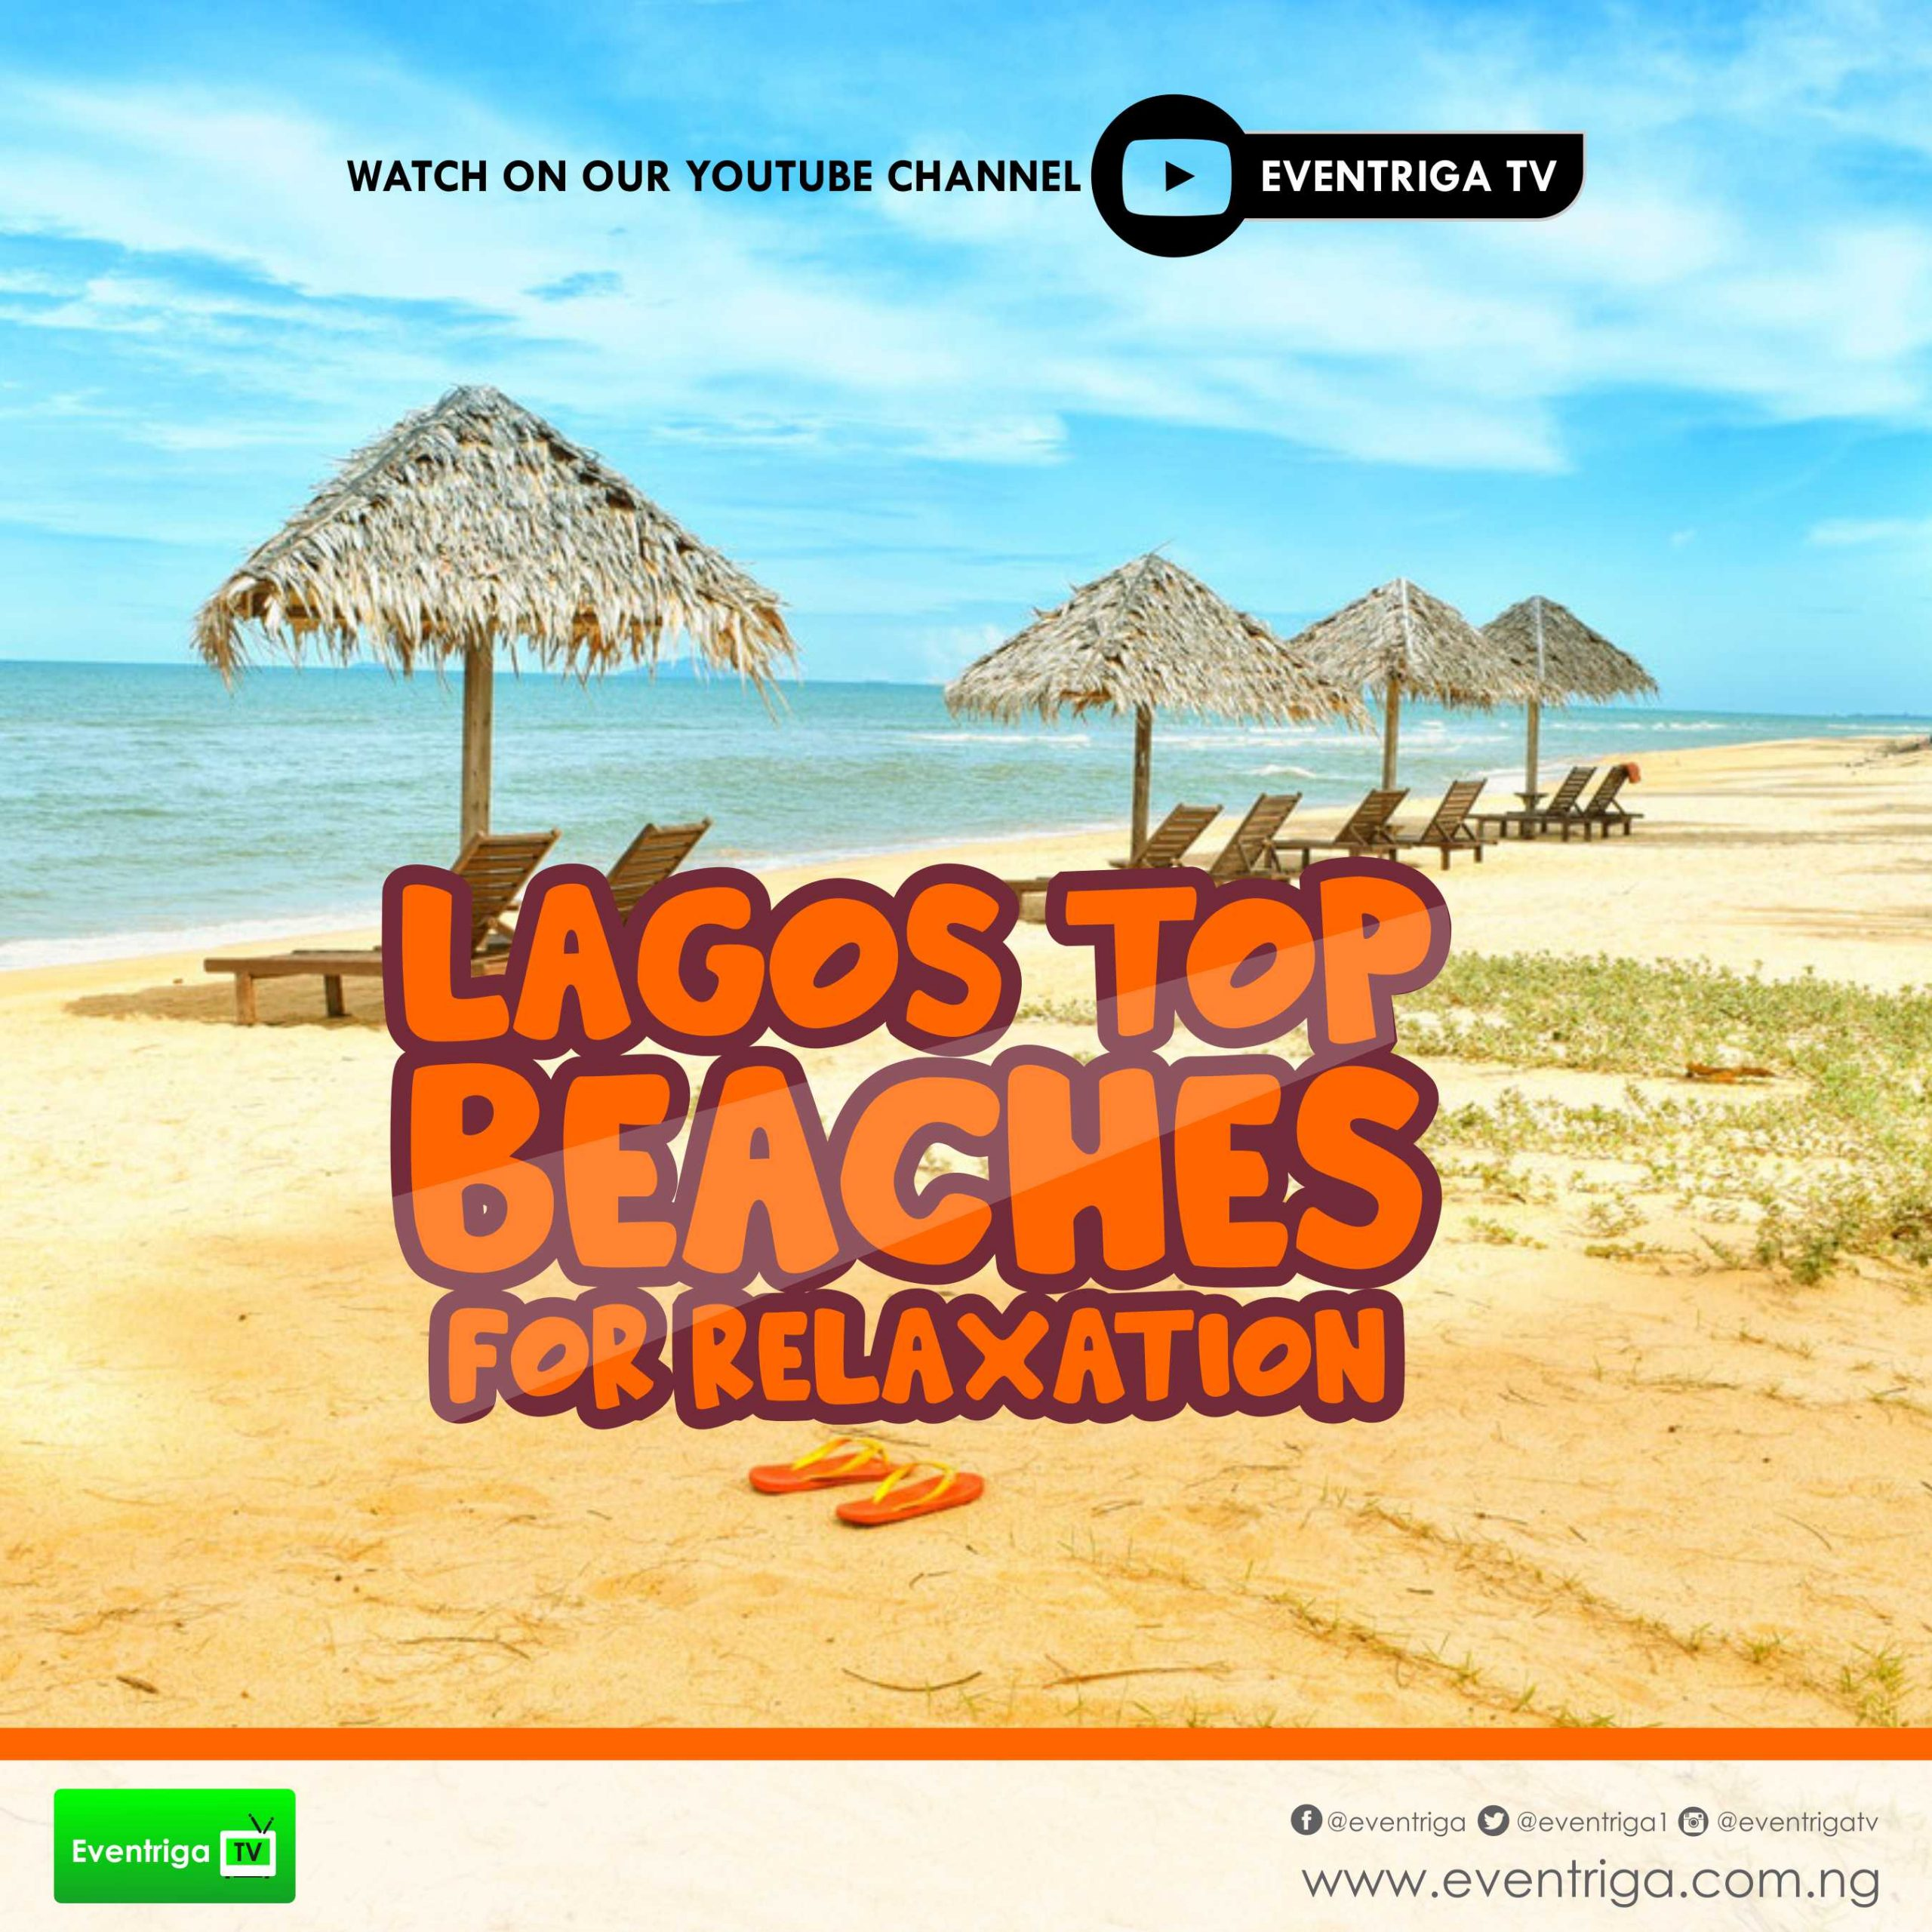 Top beaches in Lagos for relaxation